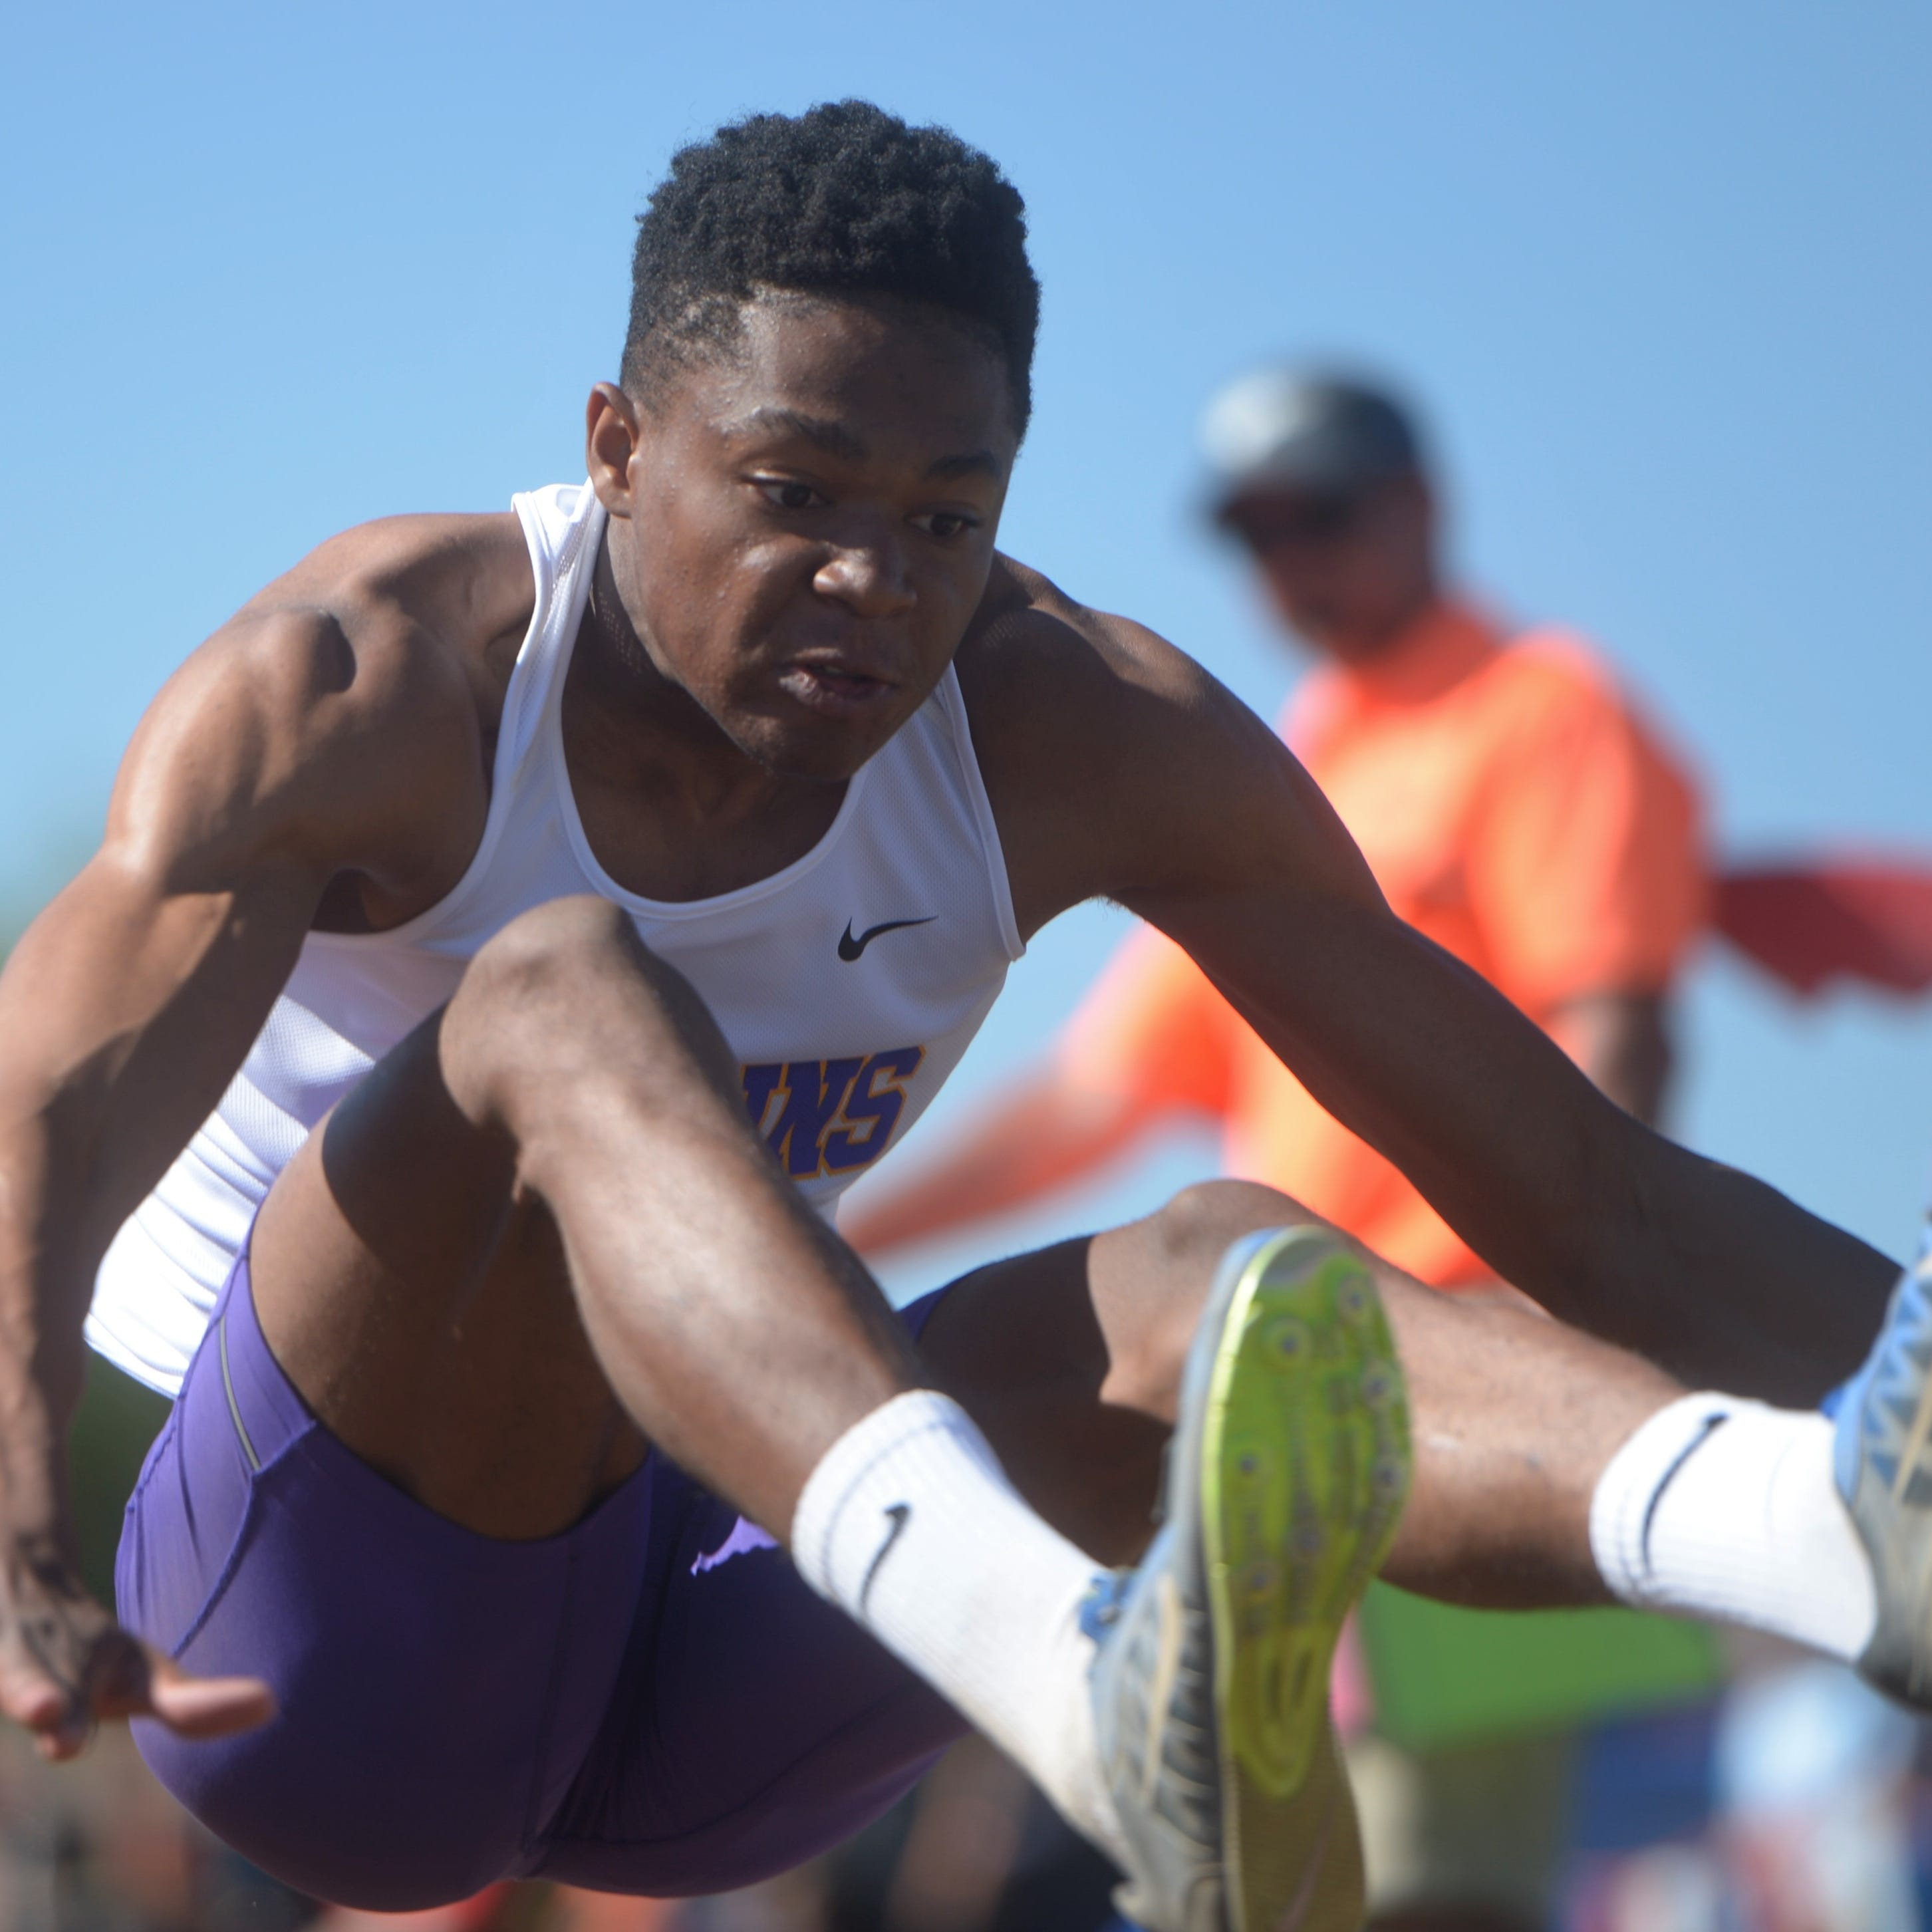 Live updates: Second day of Colorado high school state track and field meet